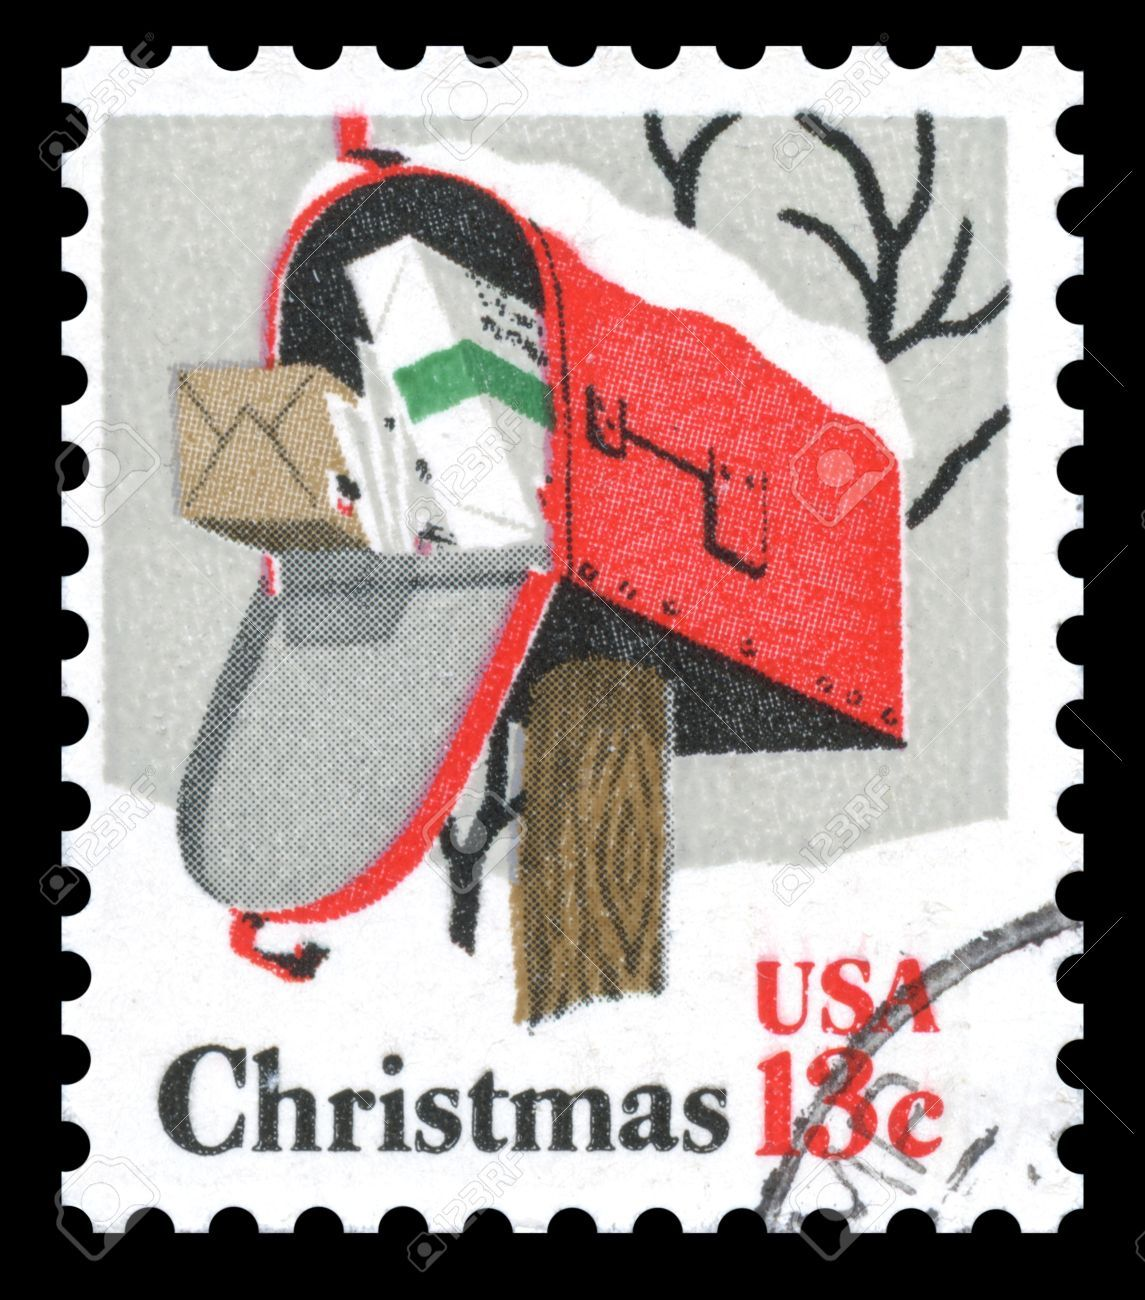 full mailbox. USA Vintage Postage Stamp Showing An Image Of A Mailbox At Christmas Stuffed Full Packages And Parcels Stock Photo